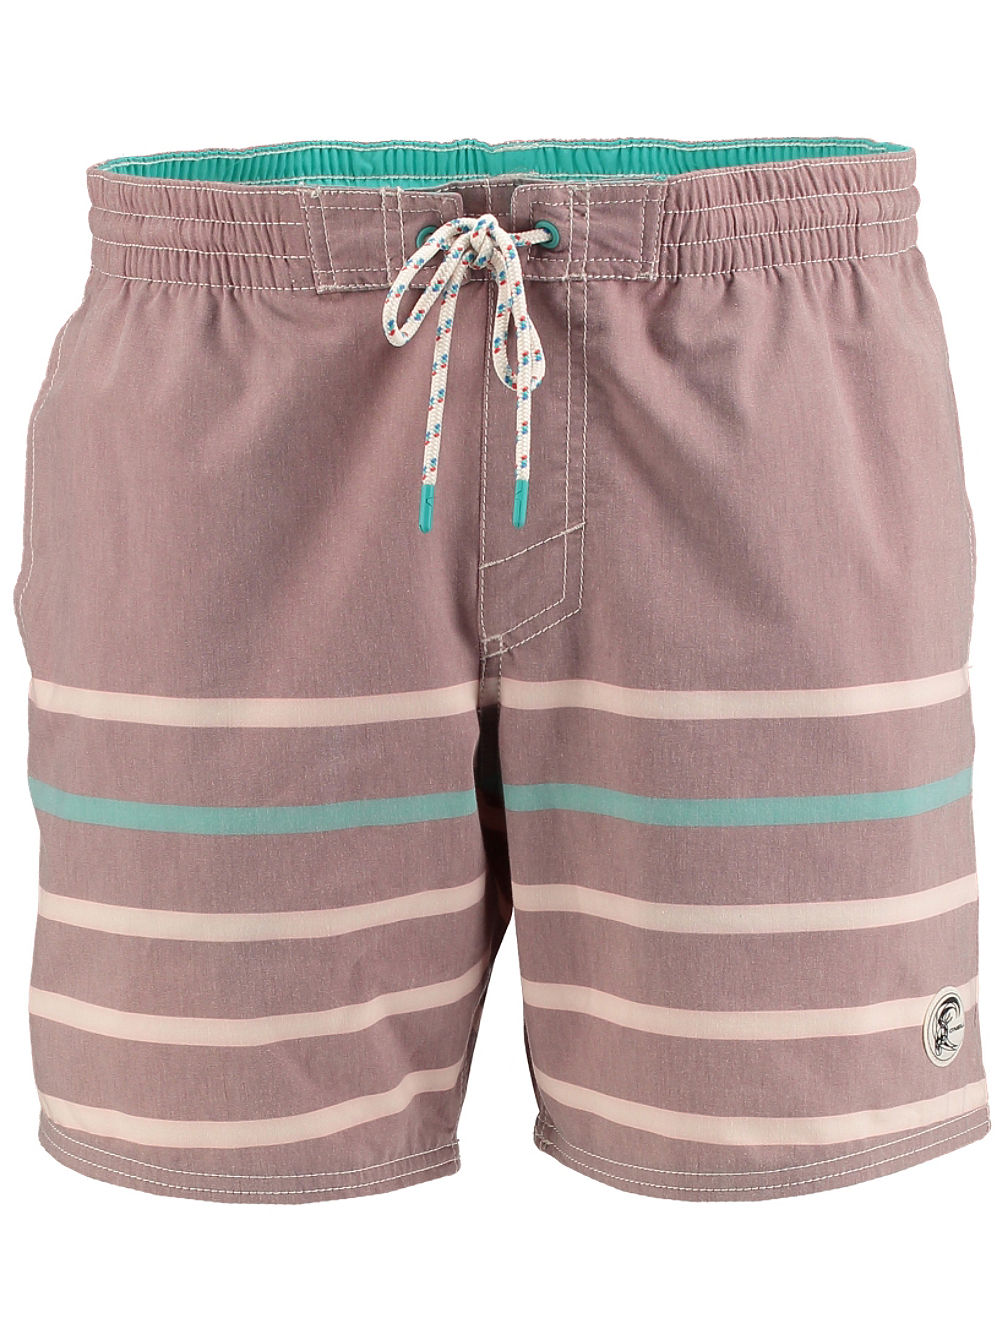 O'riginals Ocean Boardshorts